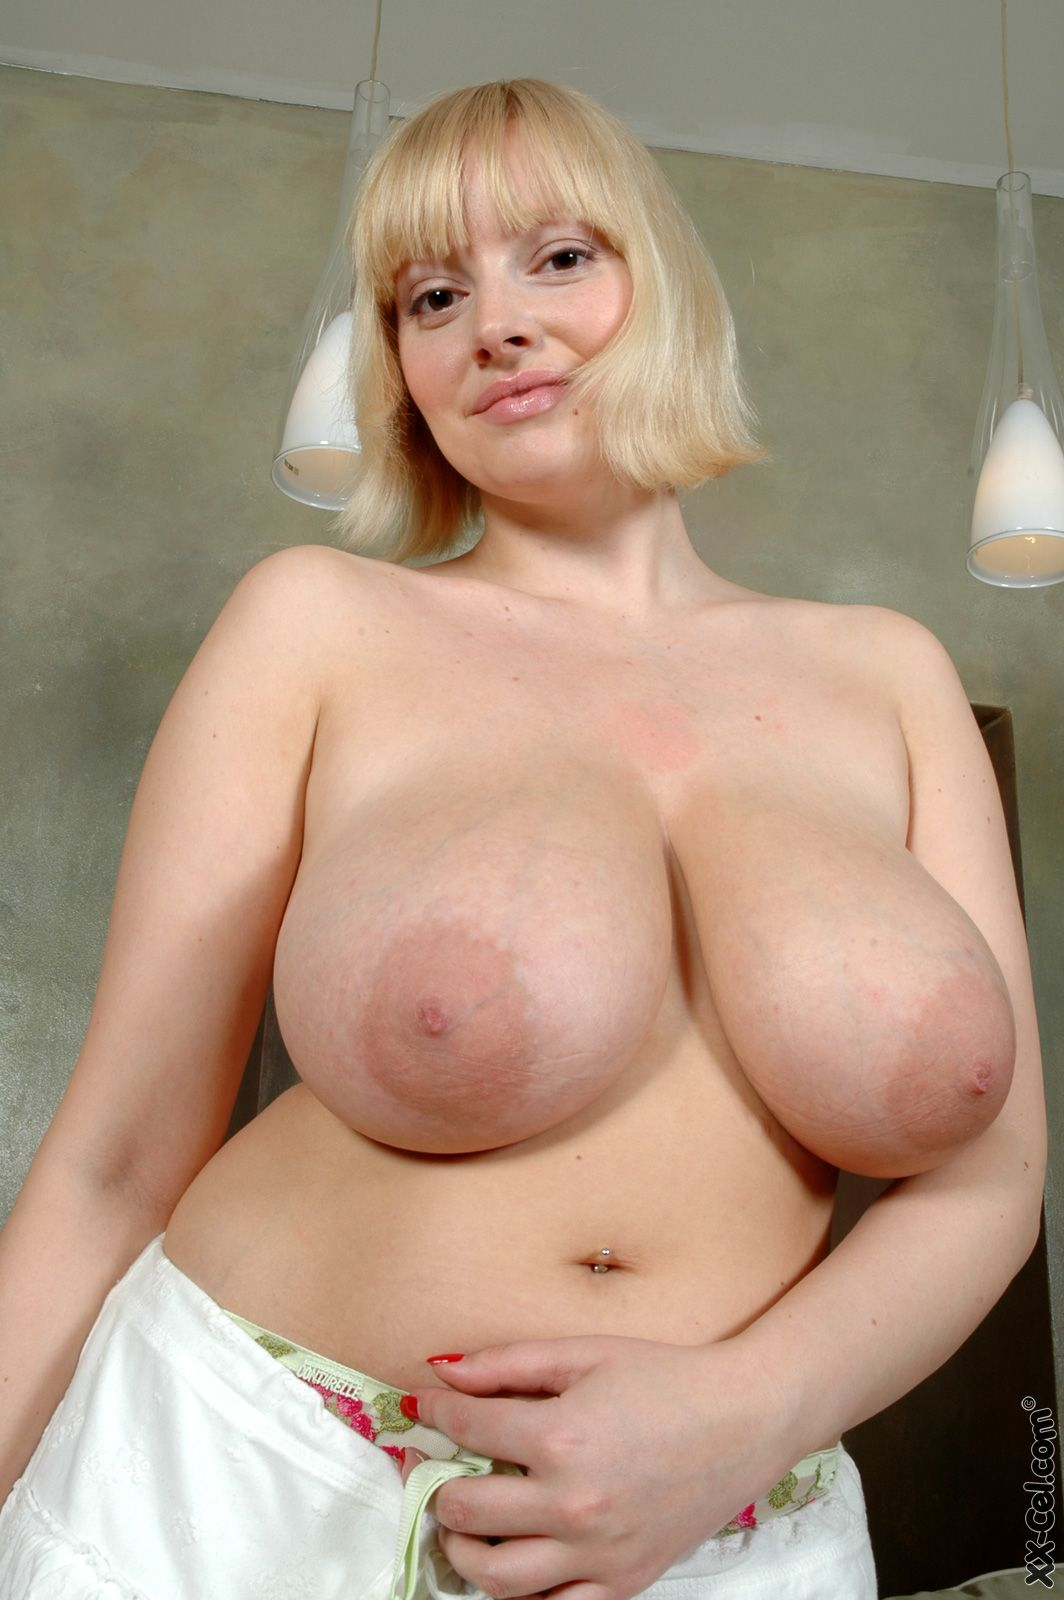 big-natural-tits videos - XVIDEOSCOM